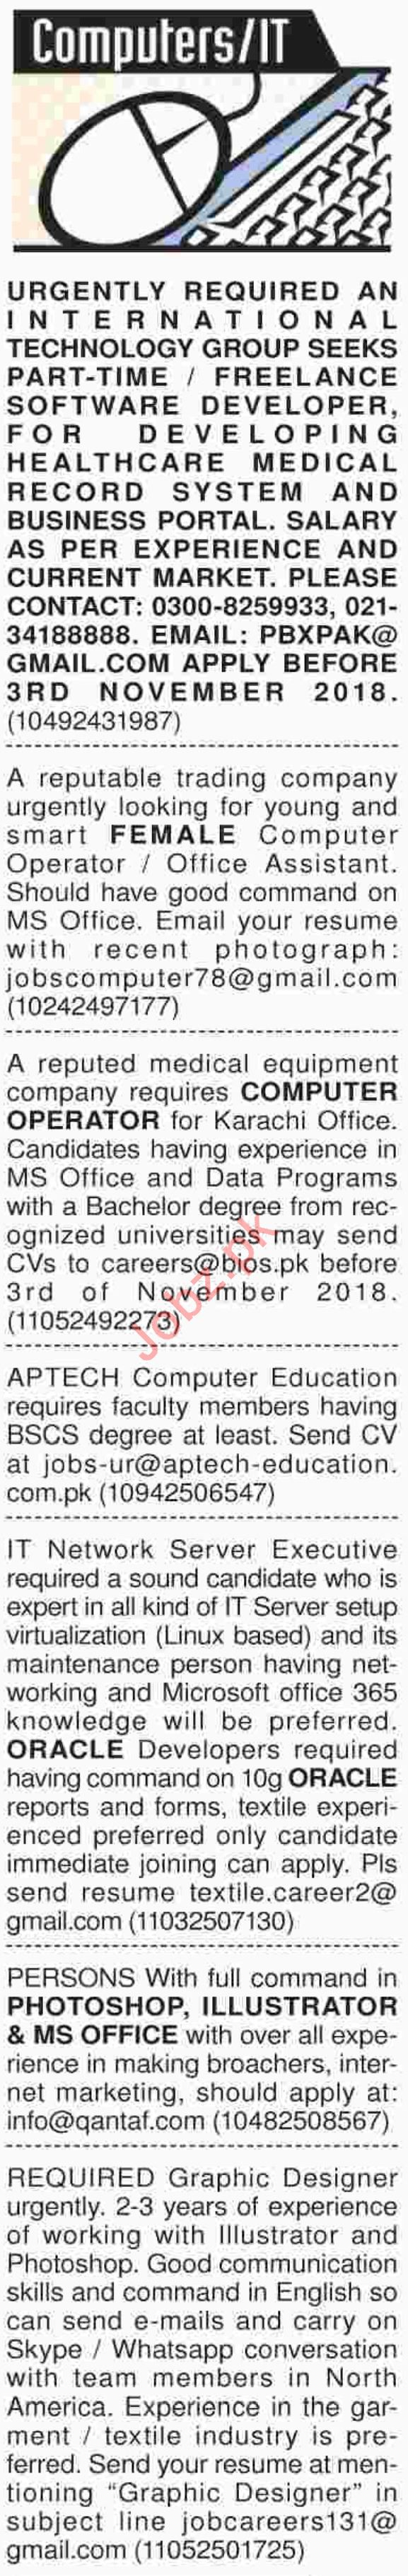 Dawn Sunday Classified Ads for Computer and IT Jobs